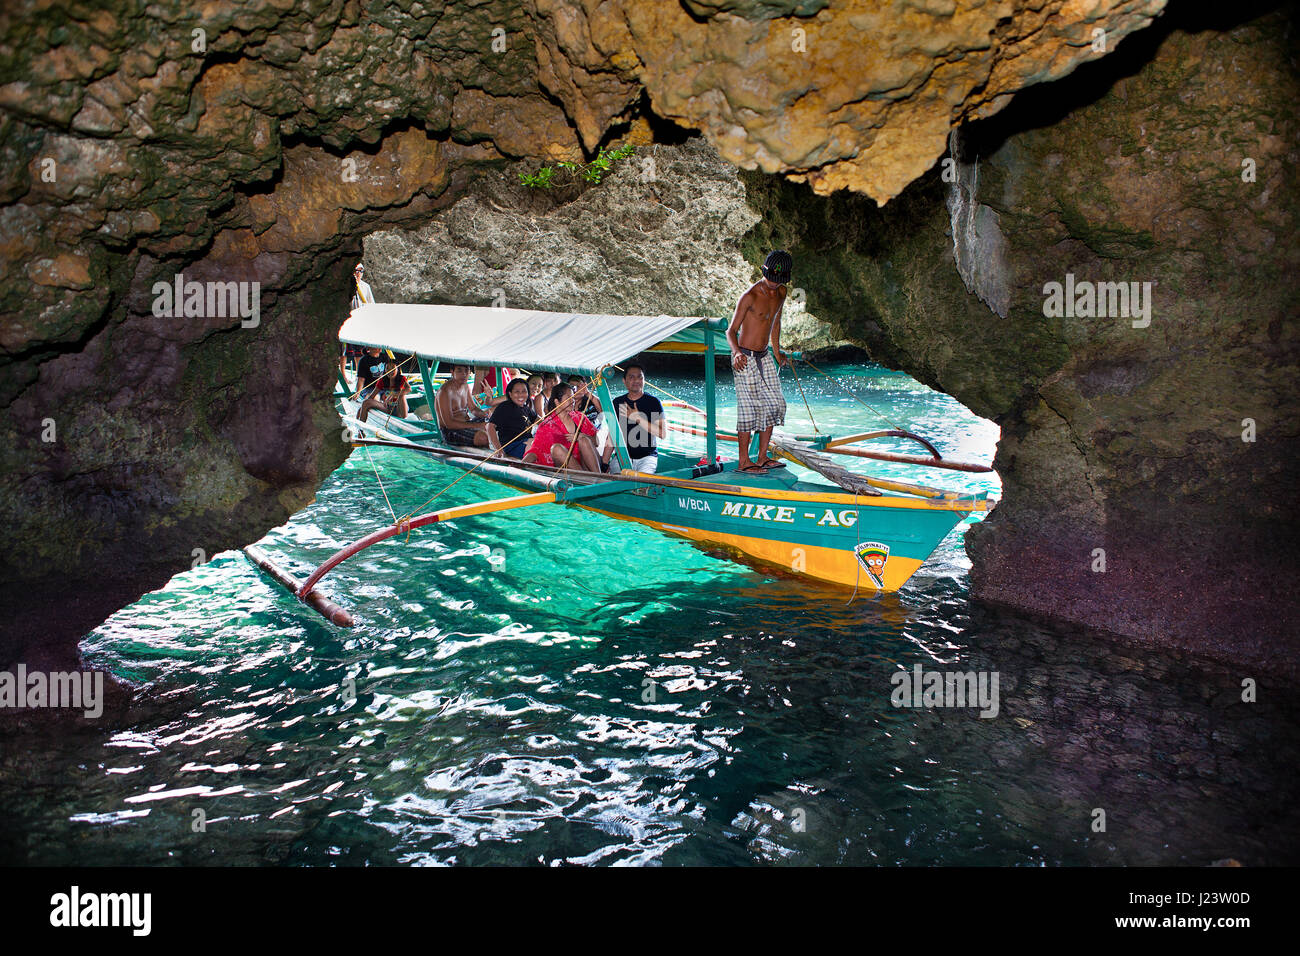 Pontoon tour boat full of tourists enter Baras Cave while island hopping in the Guimaras Islands, Philippines. - Stock Image